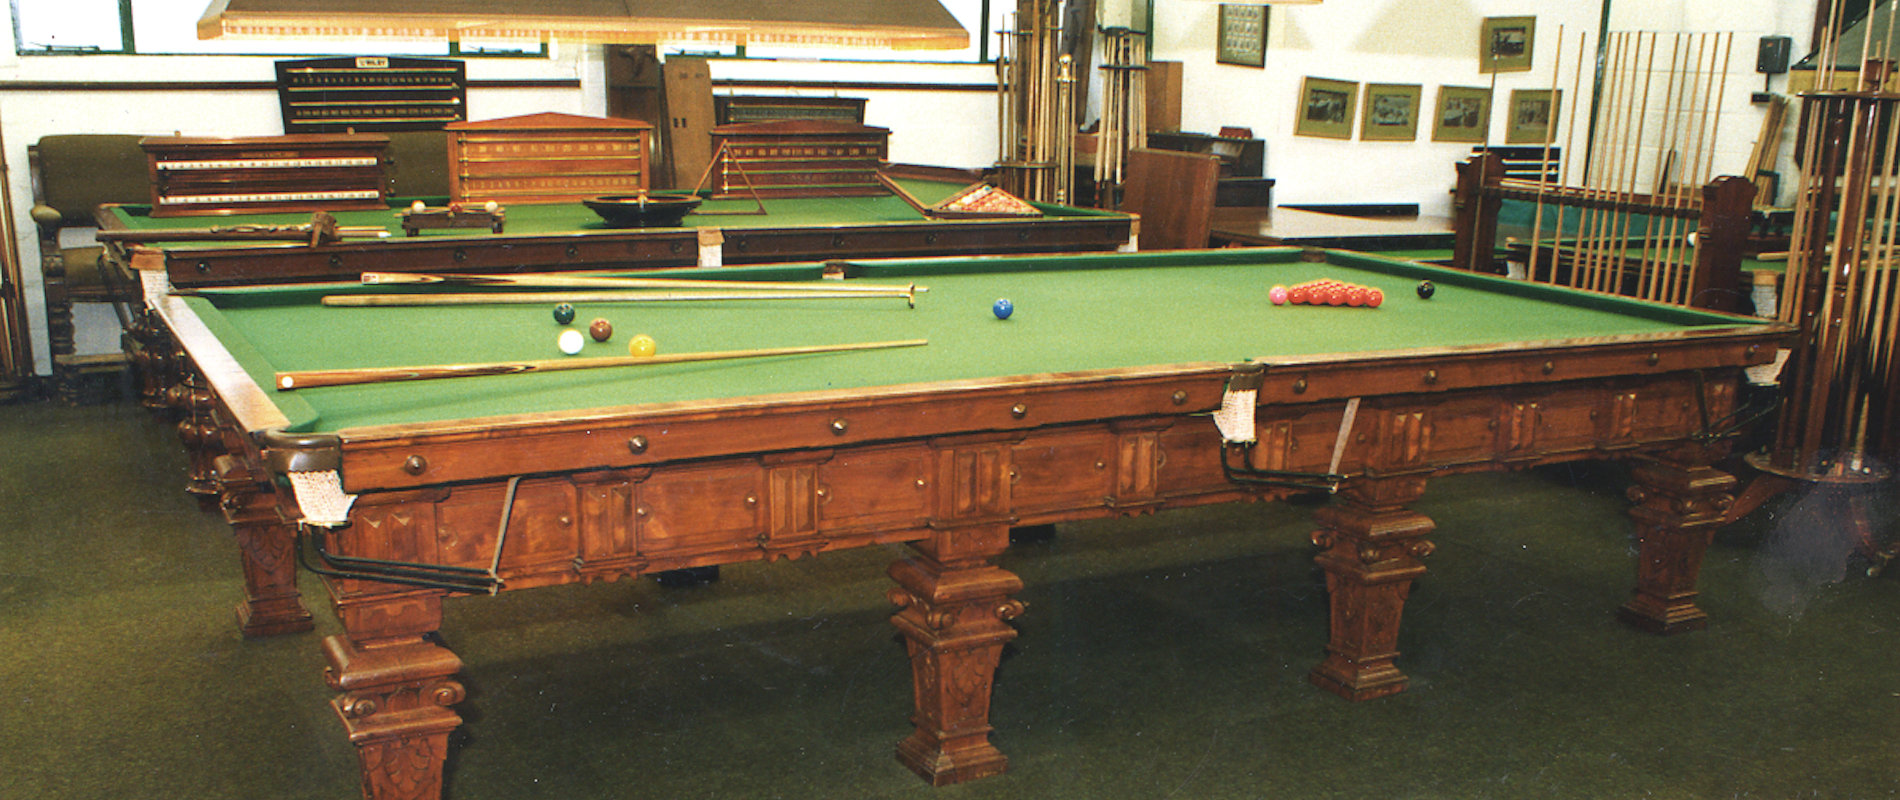 Full Size Billiard table by Norval Carved Columbian pine circa 1870